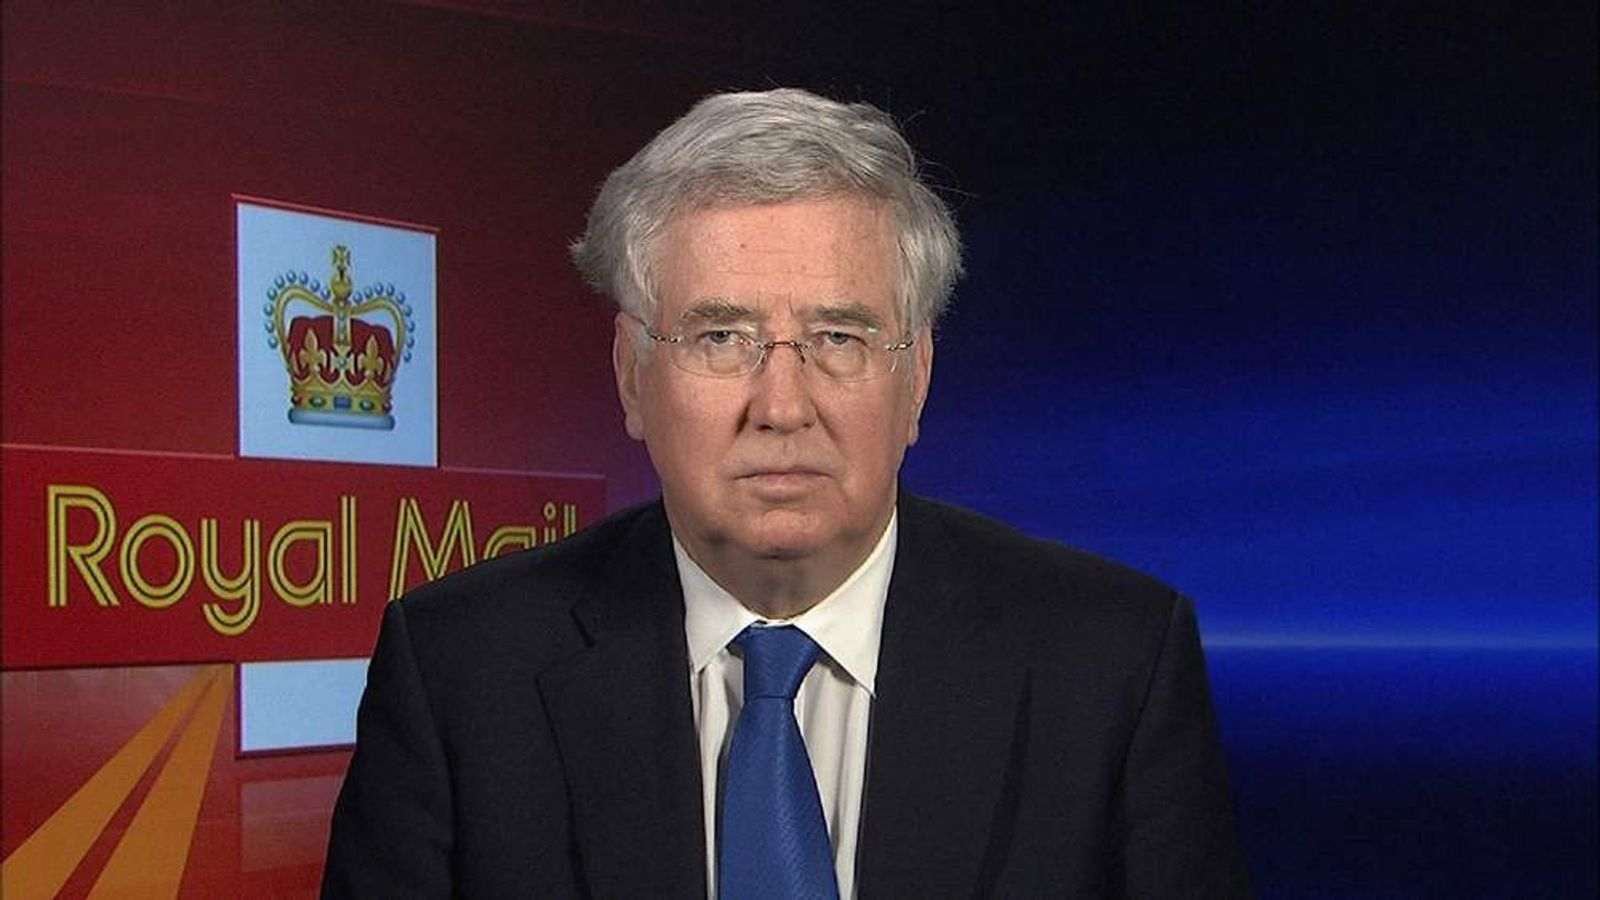 Business Minister Michael Fallon MP